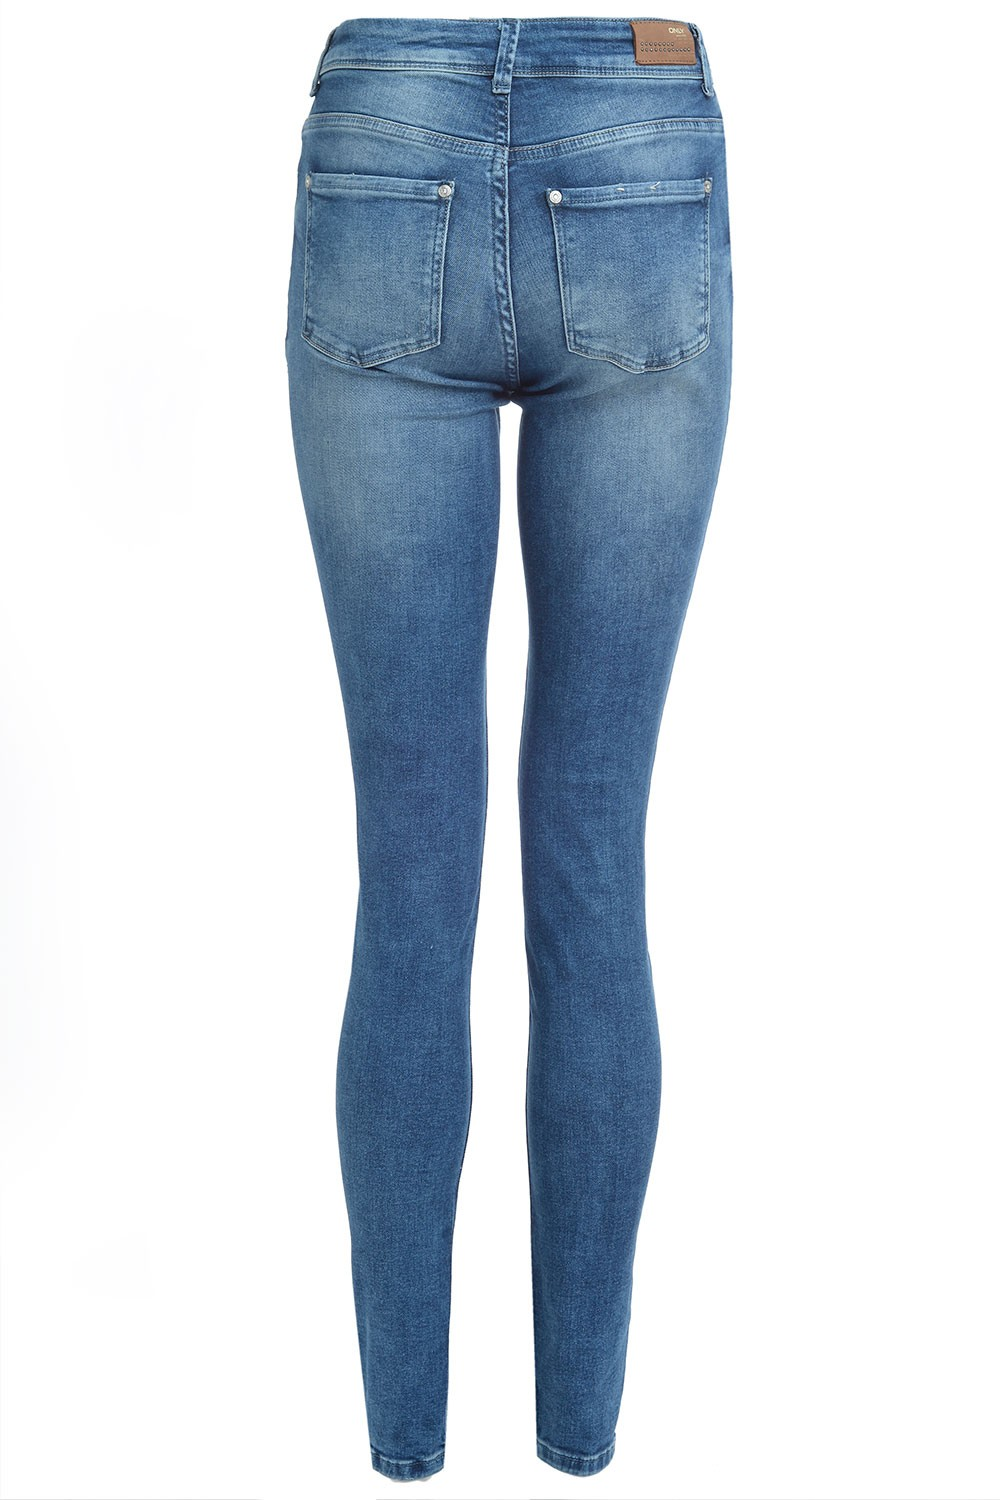 The Levi's High Rise Skinny Medium Wash Distressed Jeans are the ultimate in comfort and style! Lightly faded and whiskered denim shapes these medium wash, high-rise skinnies with belt loops, a five-pocket cut, and button fly/5(19).